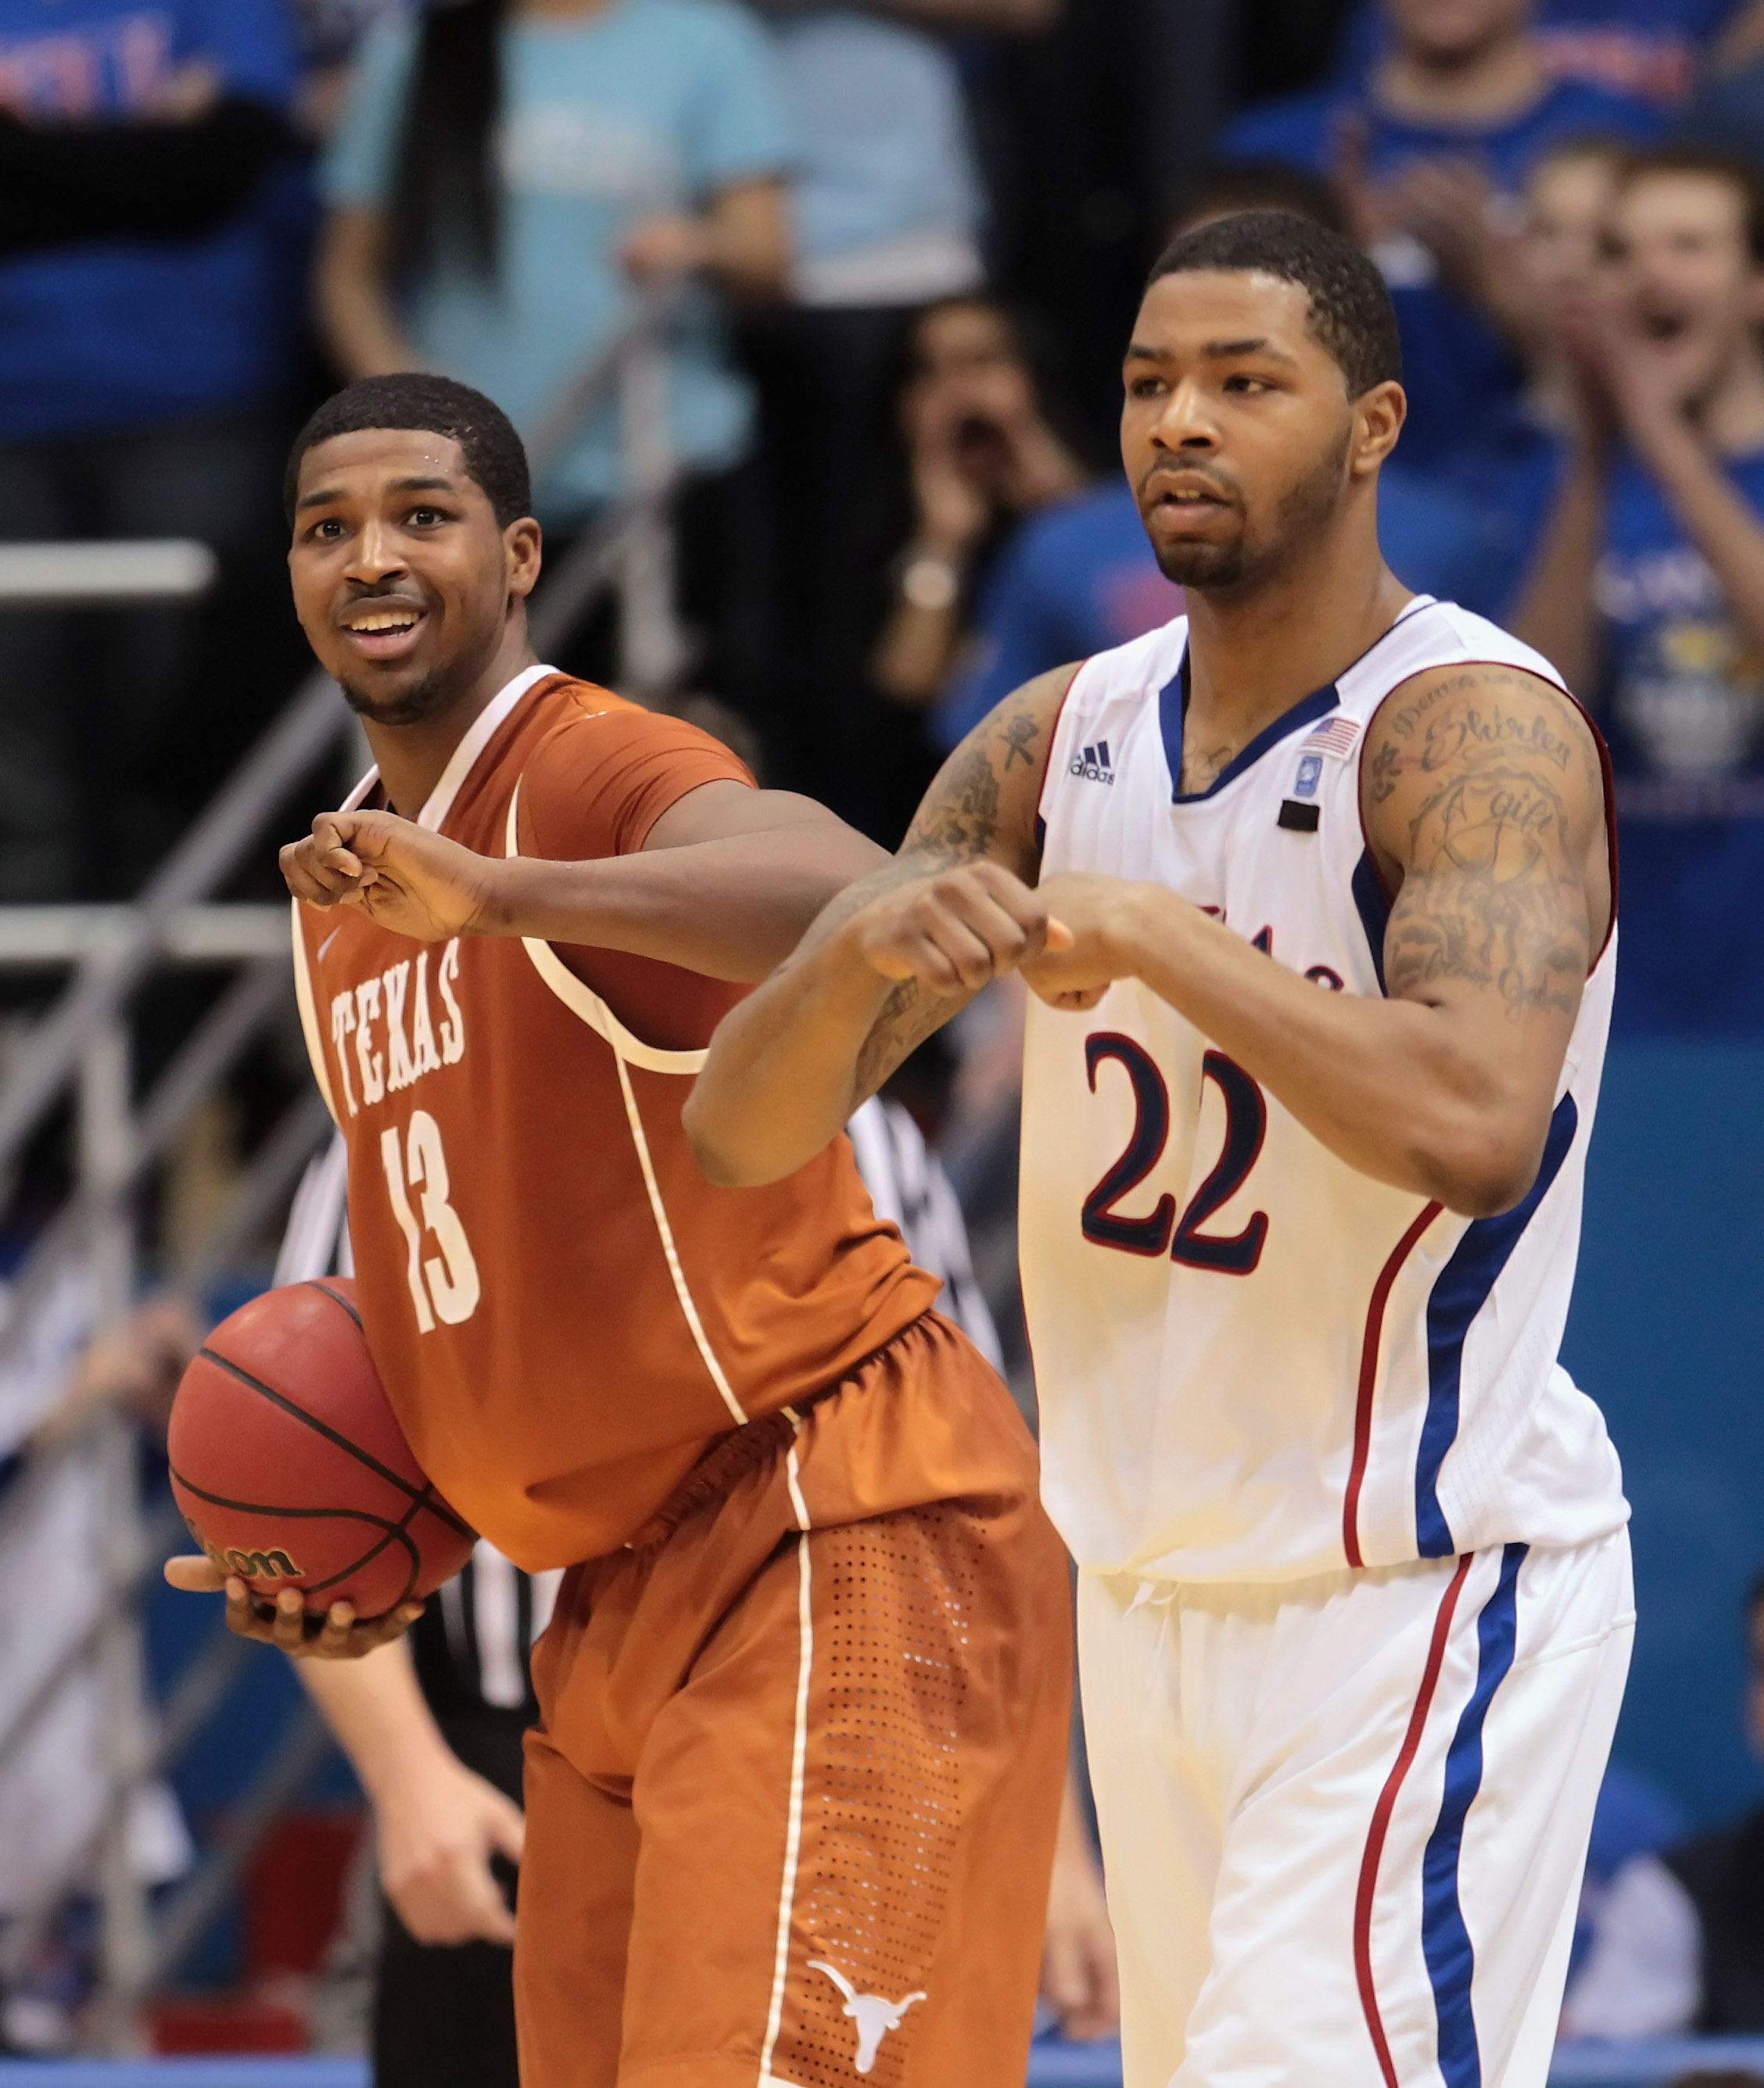 LAWRENCE, KS - JANUARY 22: Tristan Thompson #13 of the Texas Longhorns smiles after drawing a foul from Marcus Morris #22 of the Kansas Jayhawks during the second half of the game on January 22, 2011 at Allen Fieldhouse in Lawrence, Kansas. (Photo by Jami